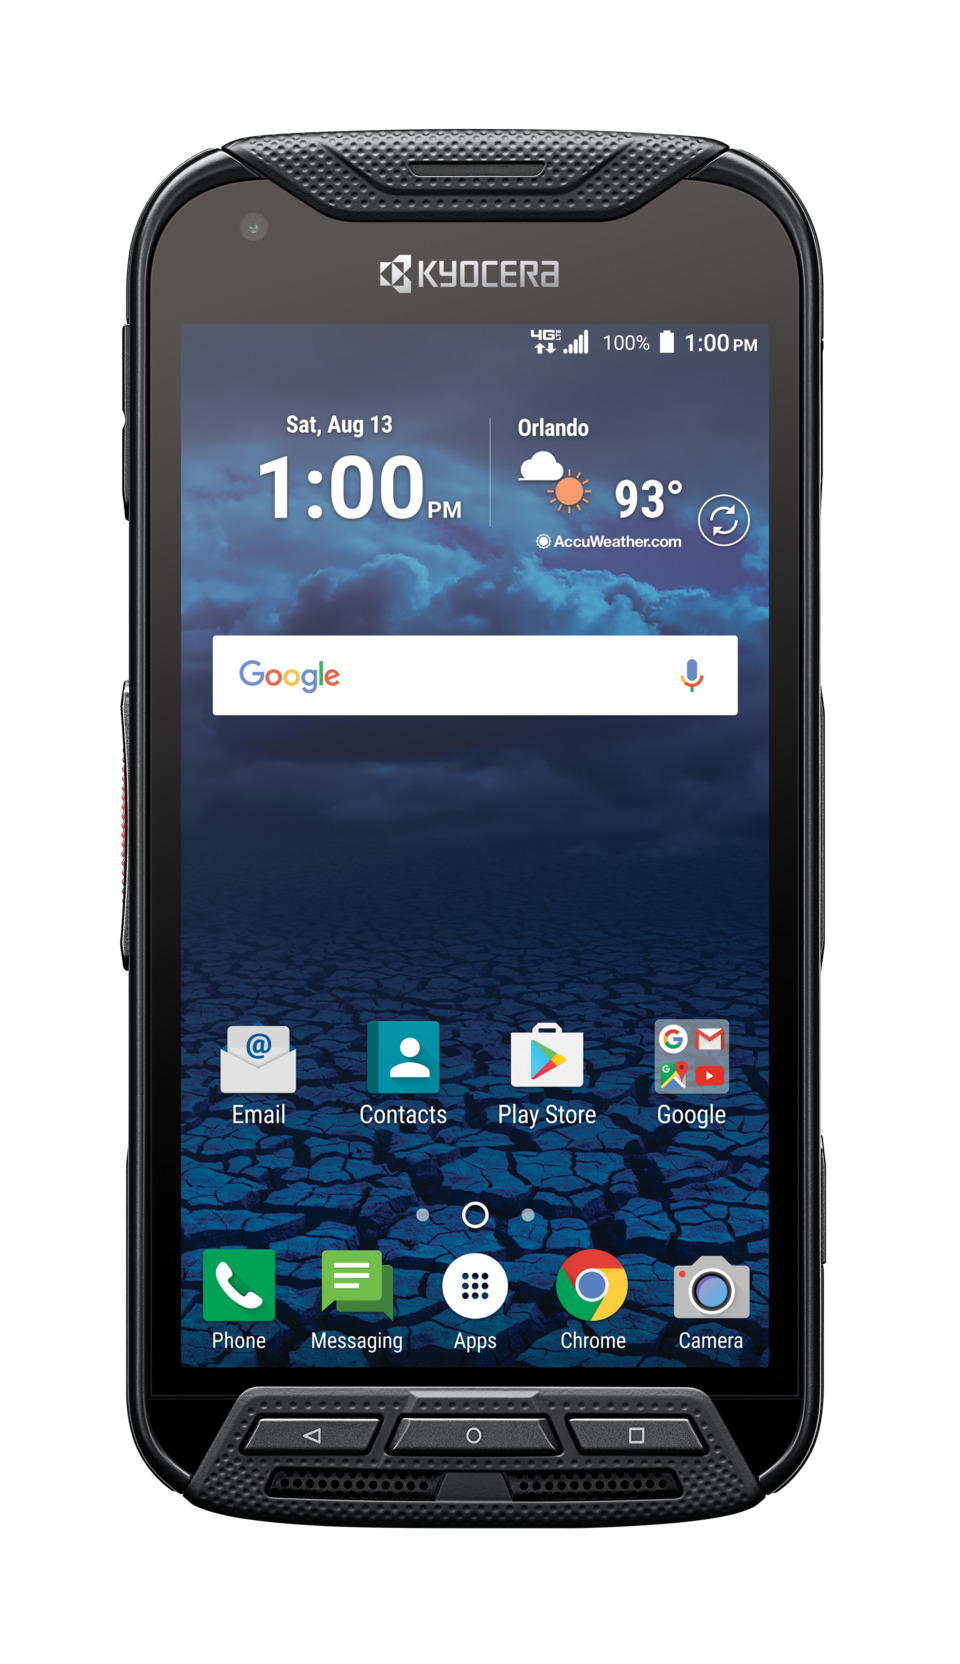 Review Kyocera Duraforce Pro Smartphone